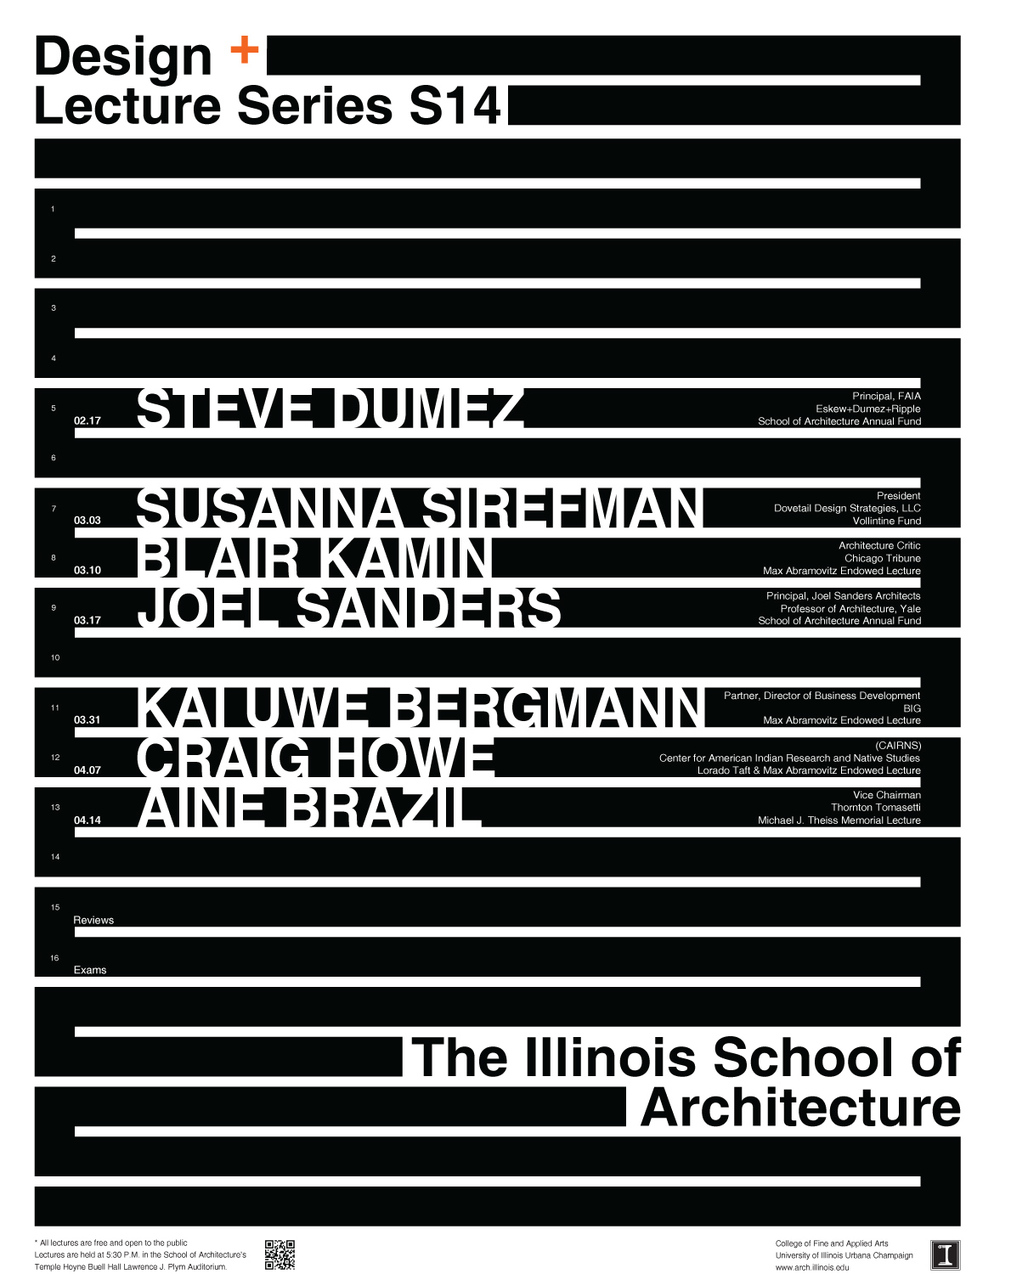 Spring 14 Lecture Events at the University of Illinois at Urbana-Champaign, Illinois School of Architecture. Image courtesy of The Illinois School of Architecture.